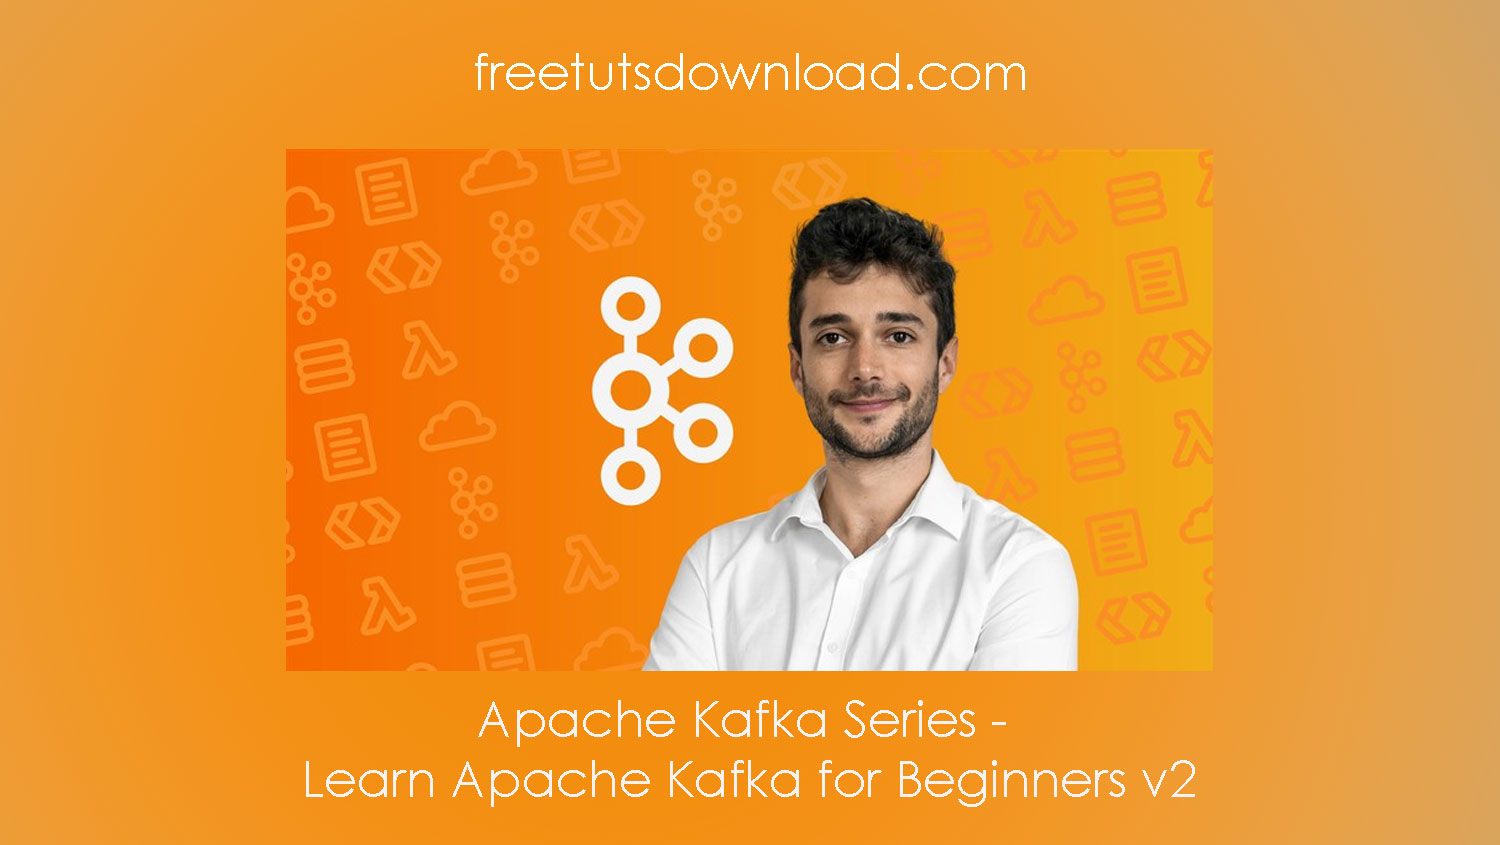 Apache Kafka Series - Learn Apache Kafka for Beginners v2